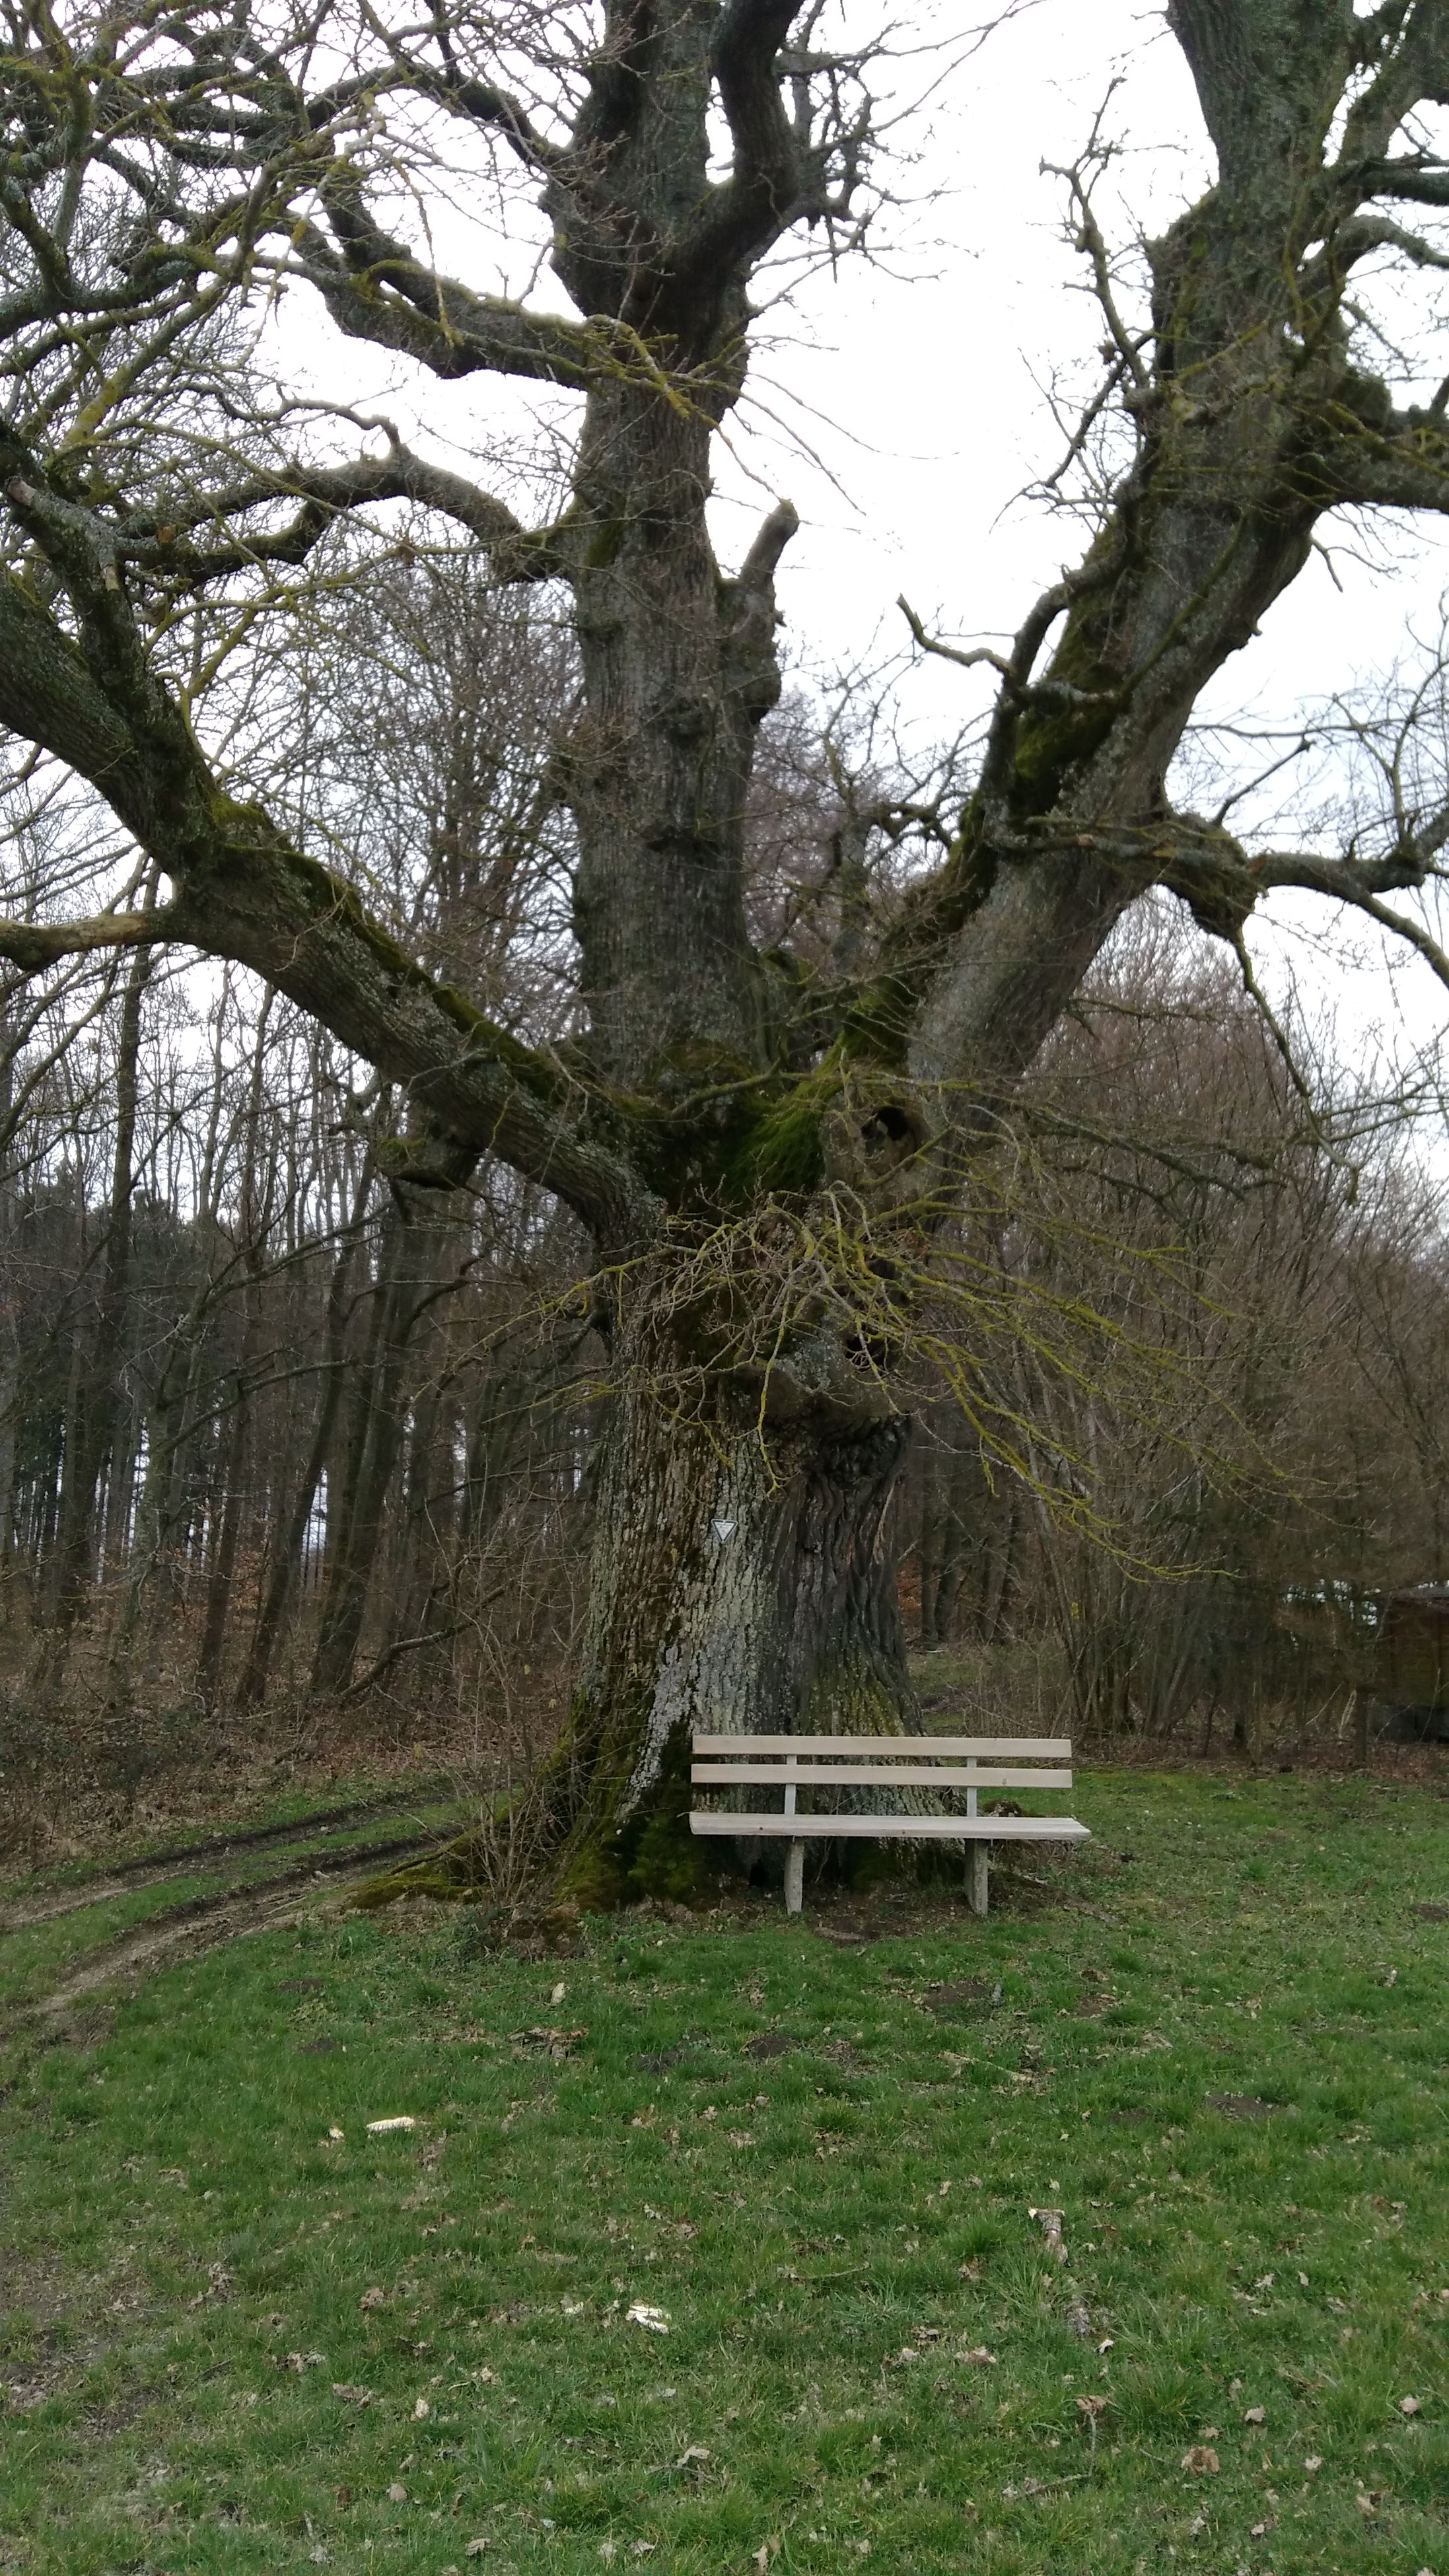 tree, grass, tree trunk, tranquility, growth, tranquil scene, branch, green color, nature, bench, grassy, beauty in nature, scenics, landscape, field, park - man made space, day, outdoors, non-urban scene, forest